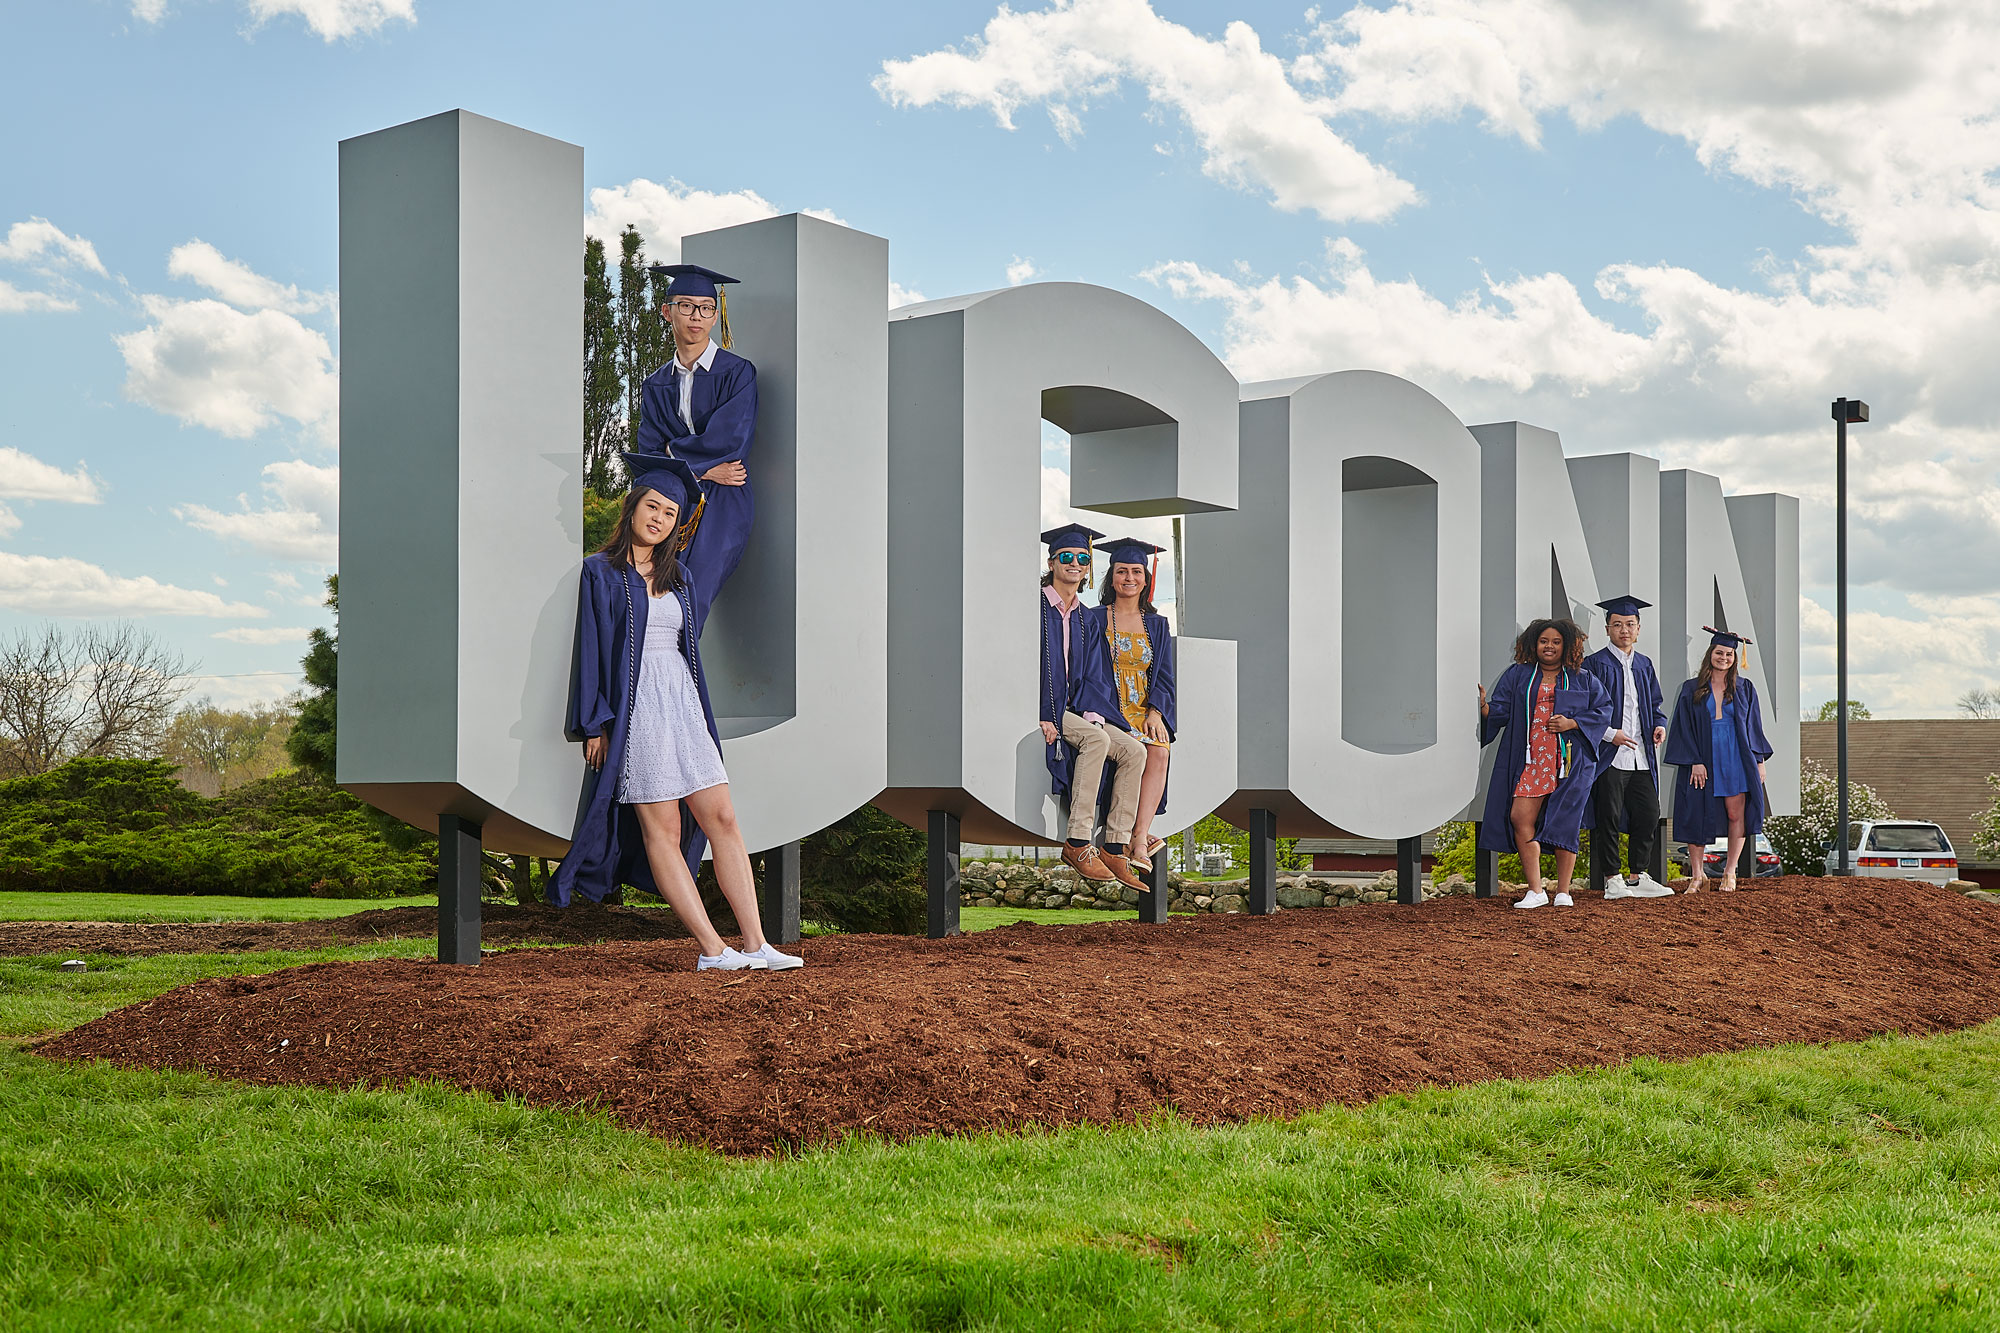 Soon to be graduats pose with the new UConn sign  along RT. 195 near W lot on May 8, 2019. From left are Kailin Lu '19 (CLAS), Kai Lu '19 (CLAS), Harun Malik '19 (CLAS), Carley Corbo '19 (ENG), Sidayah Dawson '19 (CLAS), Zhenhao Zhang '19 (CLAS), and Debra Peel '19 (CAHNR).